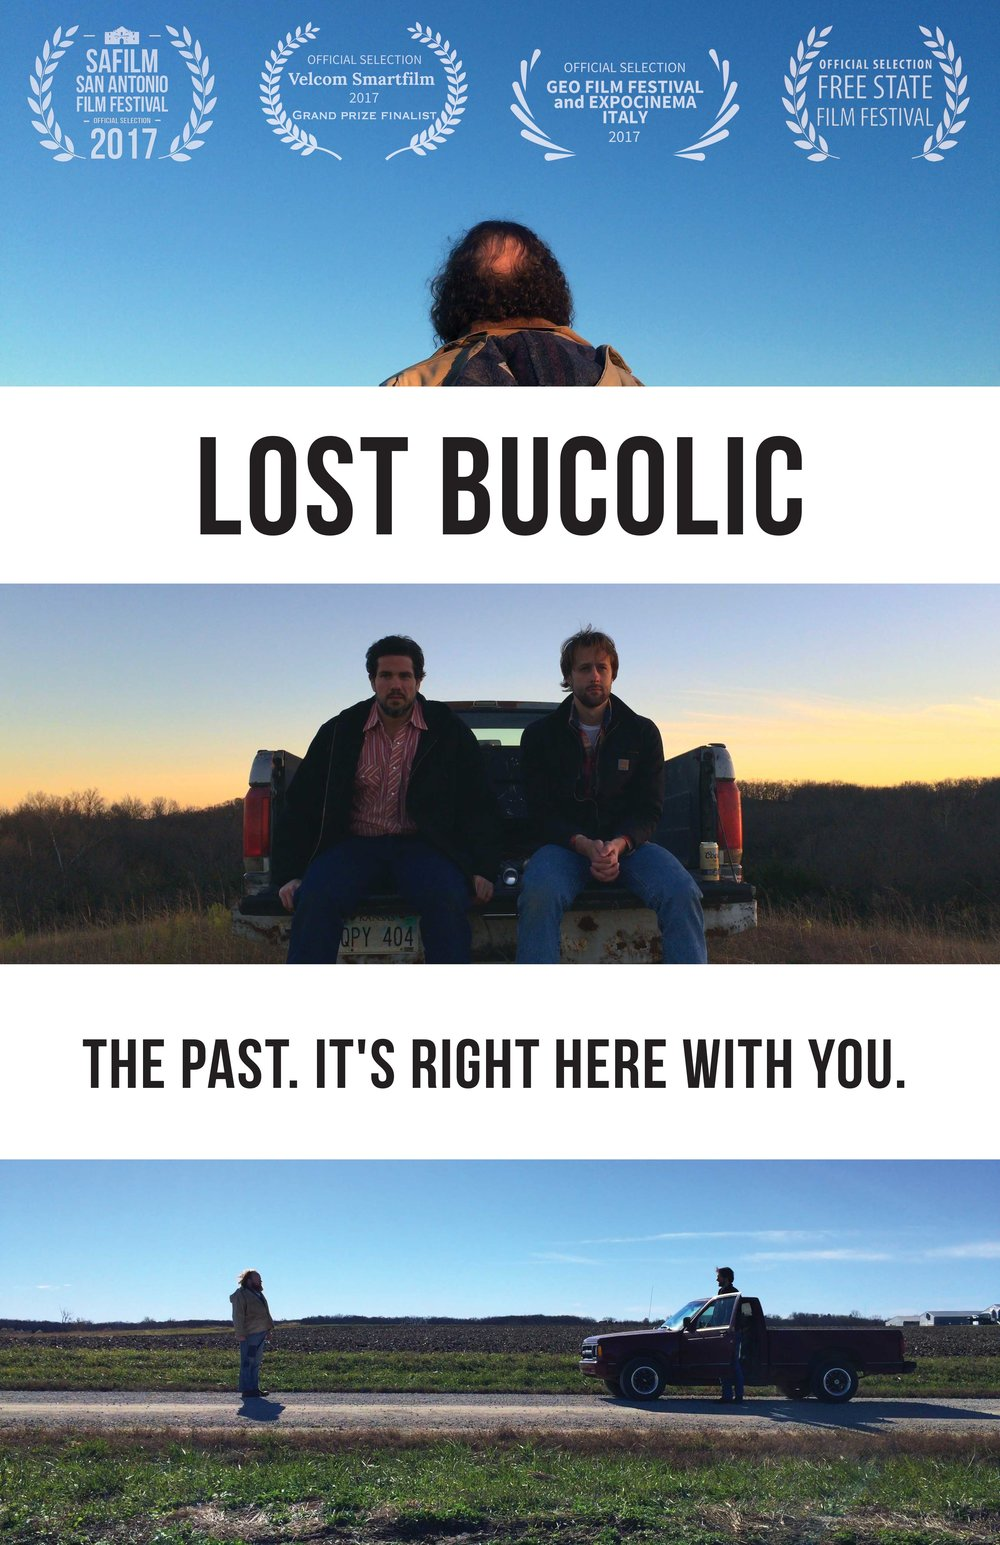 FATHER FLATBUSH PRODUCTIONS presents LOST BUCOLIC by SHANE HOWARD and STEPHEN FELIX with CURT ALAN ENOS and KALEE FORSYTHE music by NATHAN FELIX produced by SHANE HOWARD RUYA KOMAN and ZACK PISTORA screenplay by SHANE HOWARD and STEPHEN FELIX inspired by their play THE OLD MAN